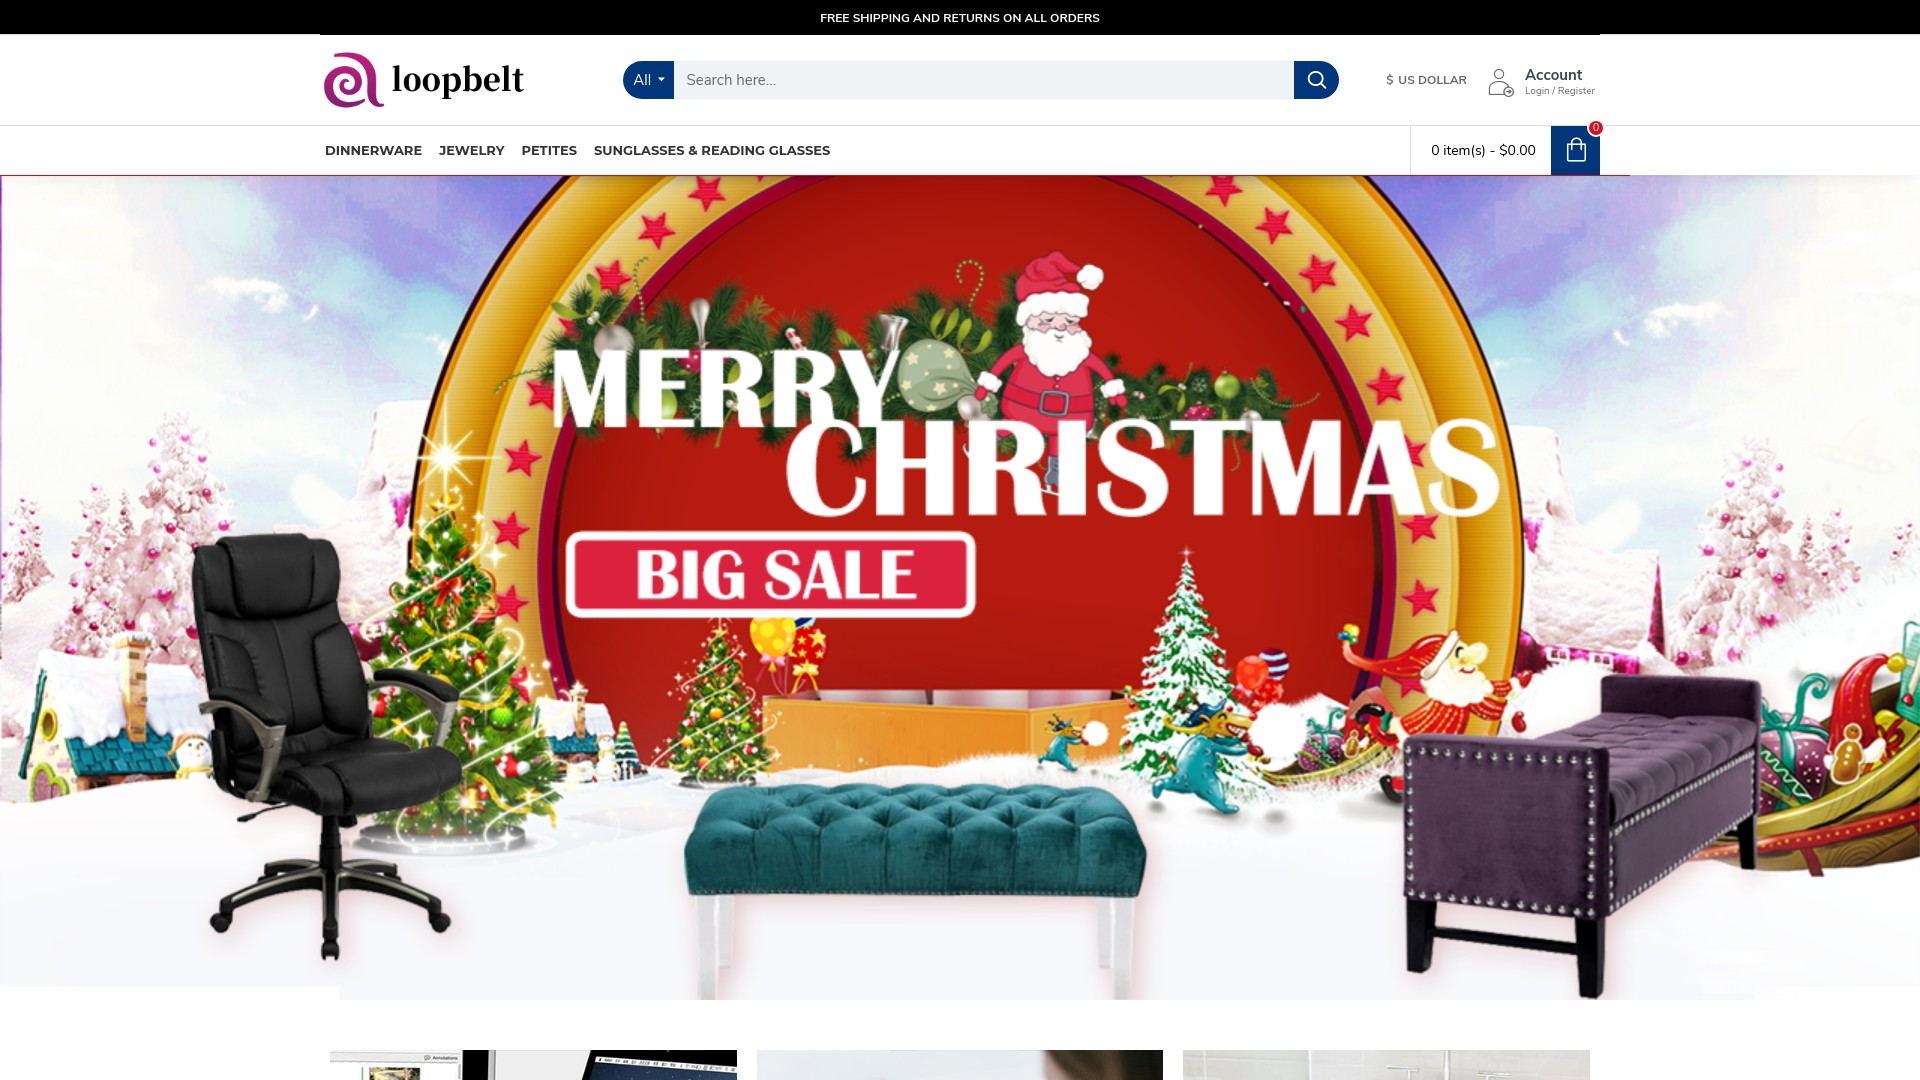 Is Loopbelt a Scam? See the Review of the Online Store